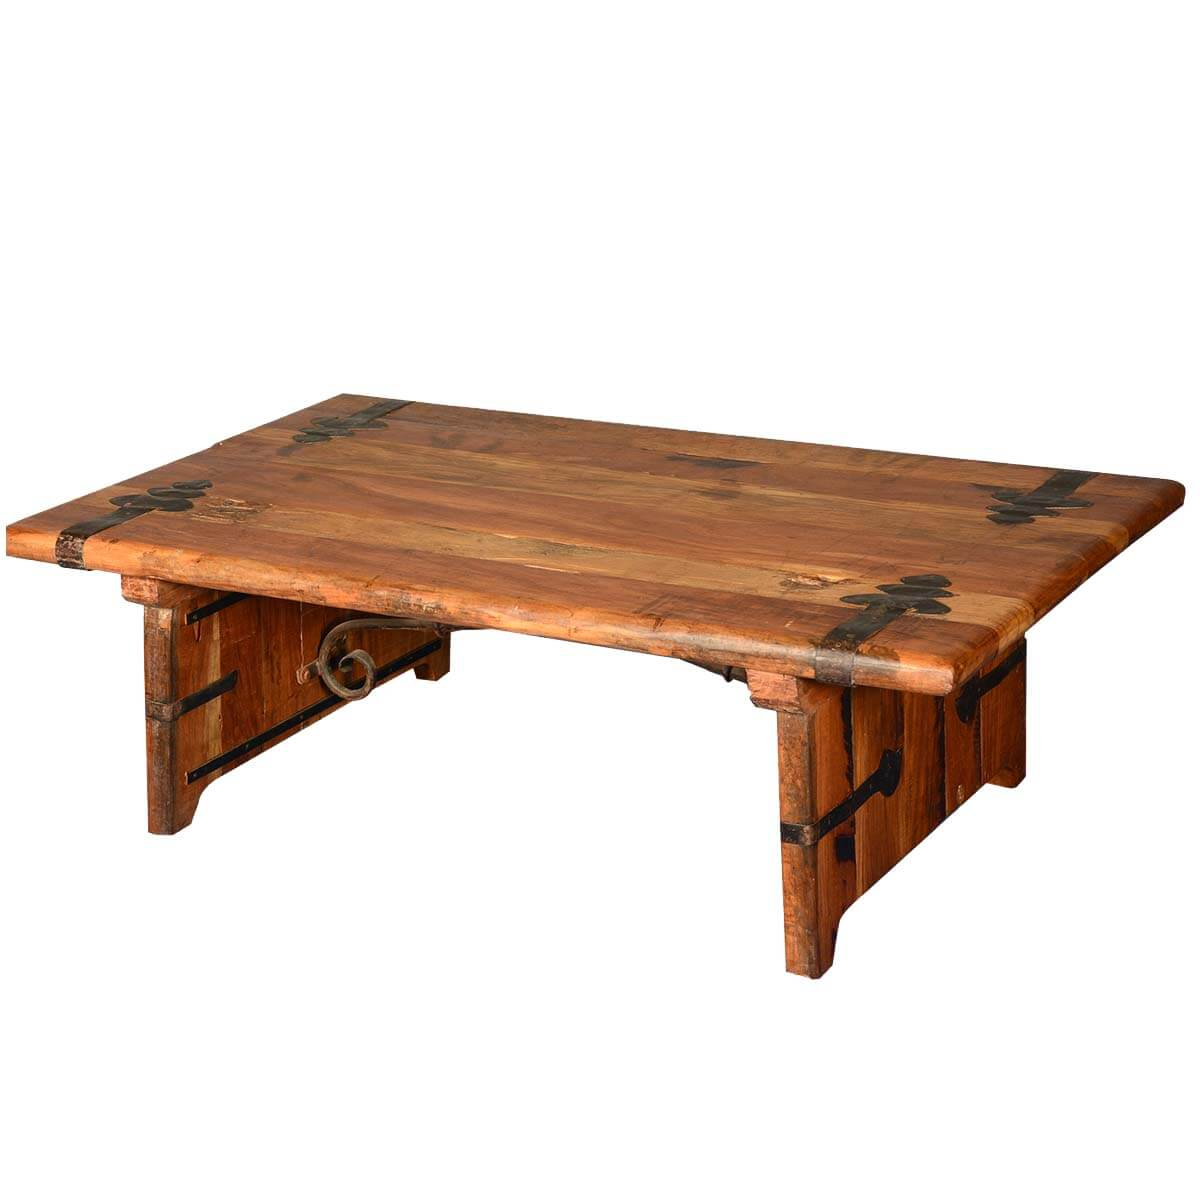 Rustic reclaimed wood wrought iron hastings coffee table Recycled wood coffee table